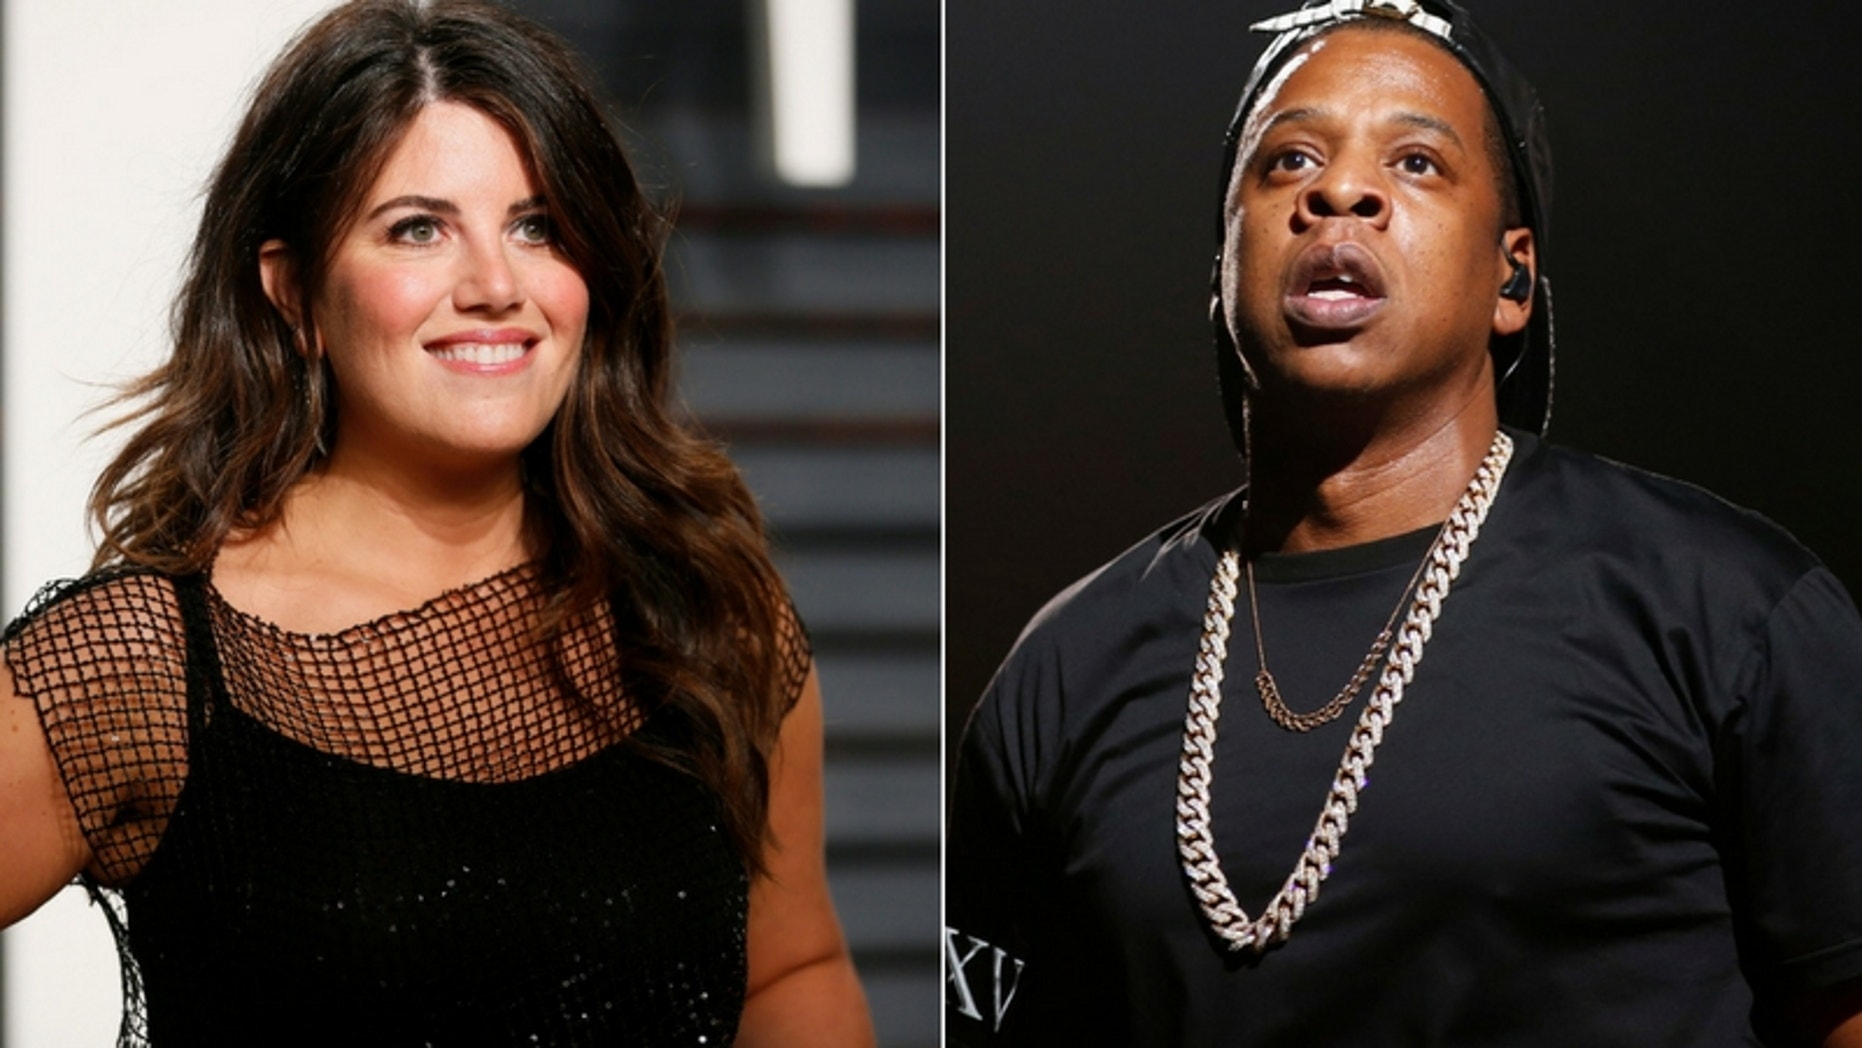 """Monica Lewinsky praised Jay-Z for opening up about his relationship in his new album """"4:44."""" (Reuters)"""